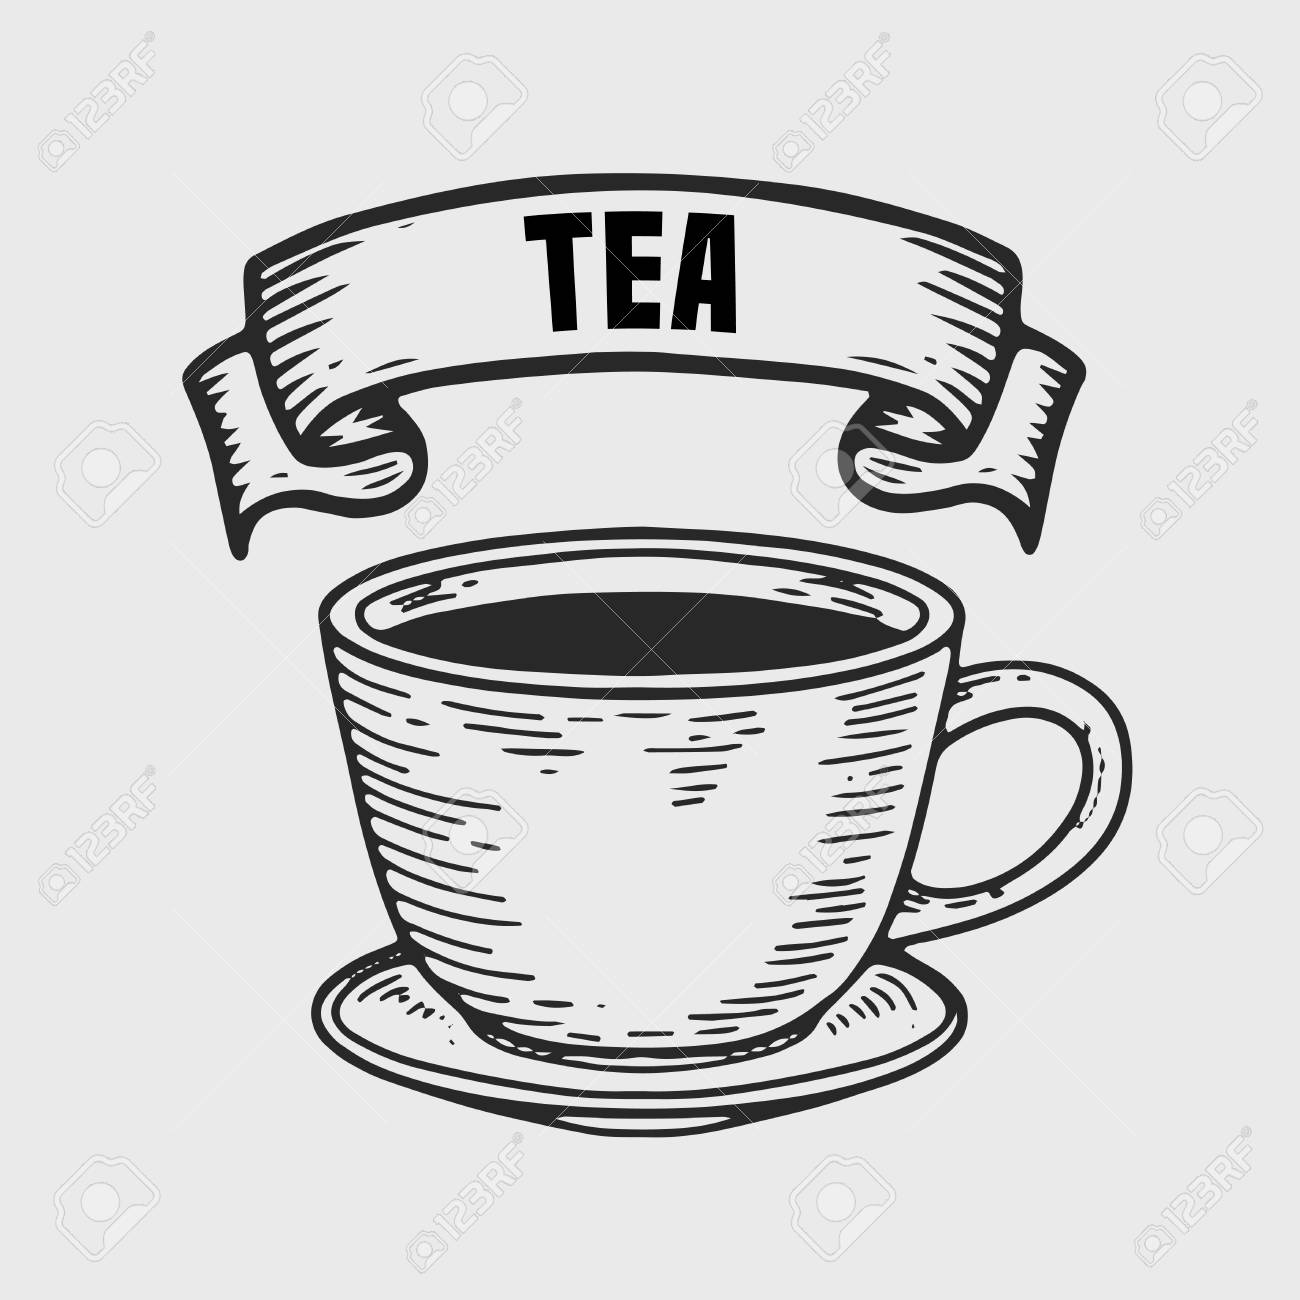 tea vector engraving label hand drawn engraved vector sketch royalty free cliparts vectors and stock illustration image 96673795 123rf com